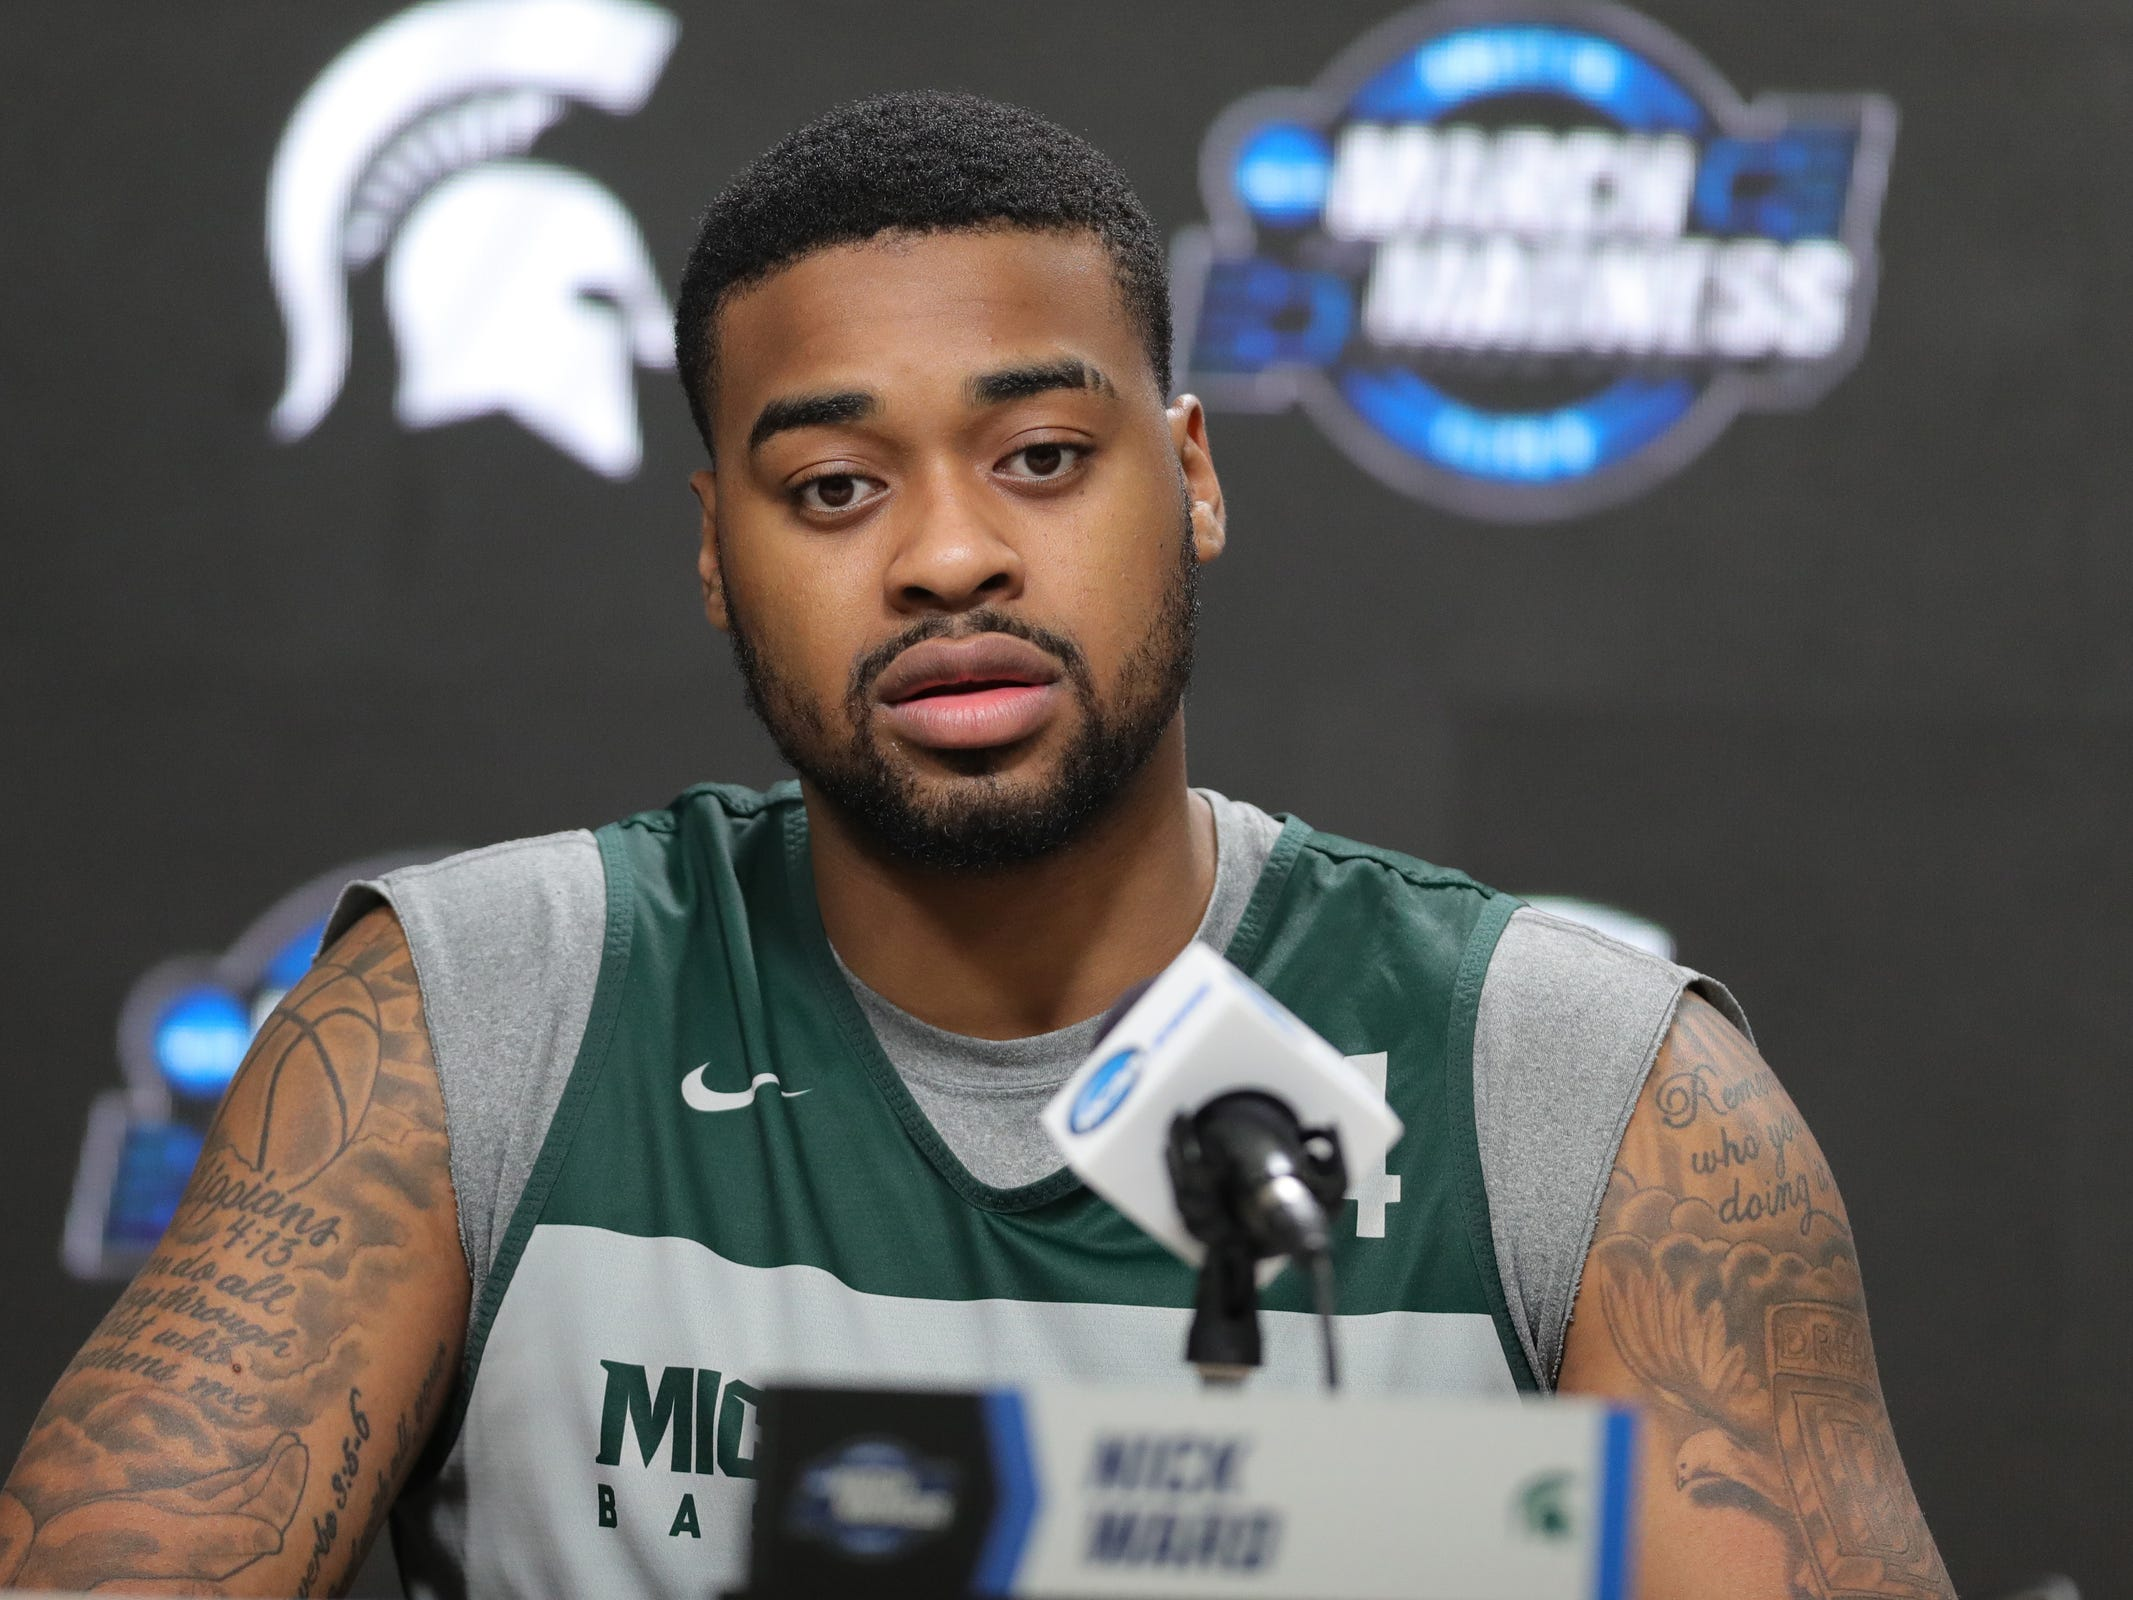 Michigan State's Nick Ward talks with reporters one day before their NCAA tournament game against Duke, Saturday, March 30, 2019 at Capital One Arena in Washington, D.C.